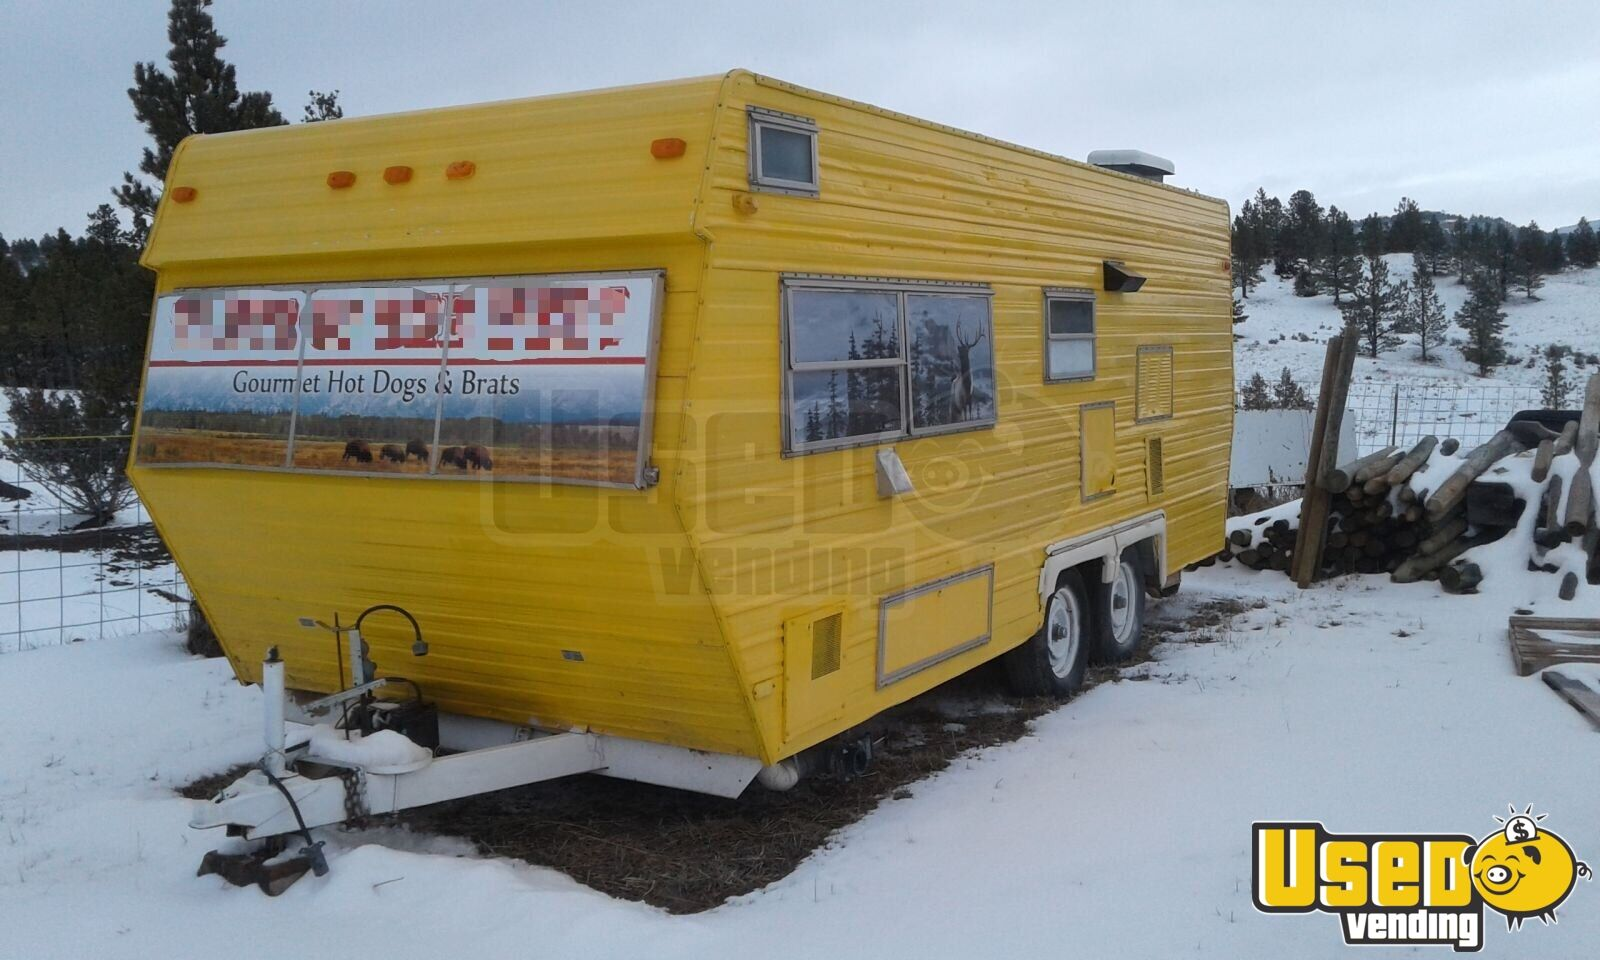 Food Concession Trailer Concession Trailer Propane Tank Wyoming for Sale - 6